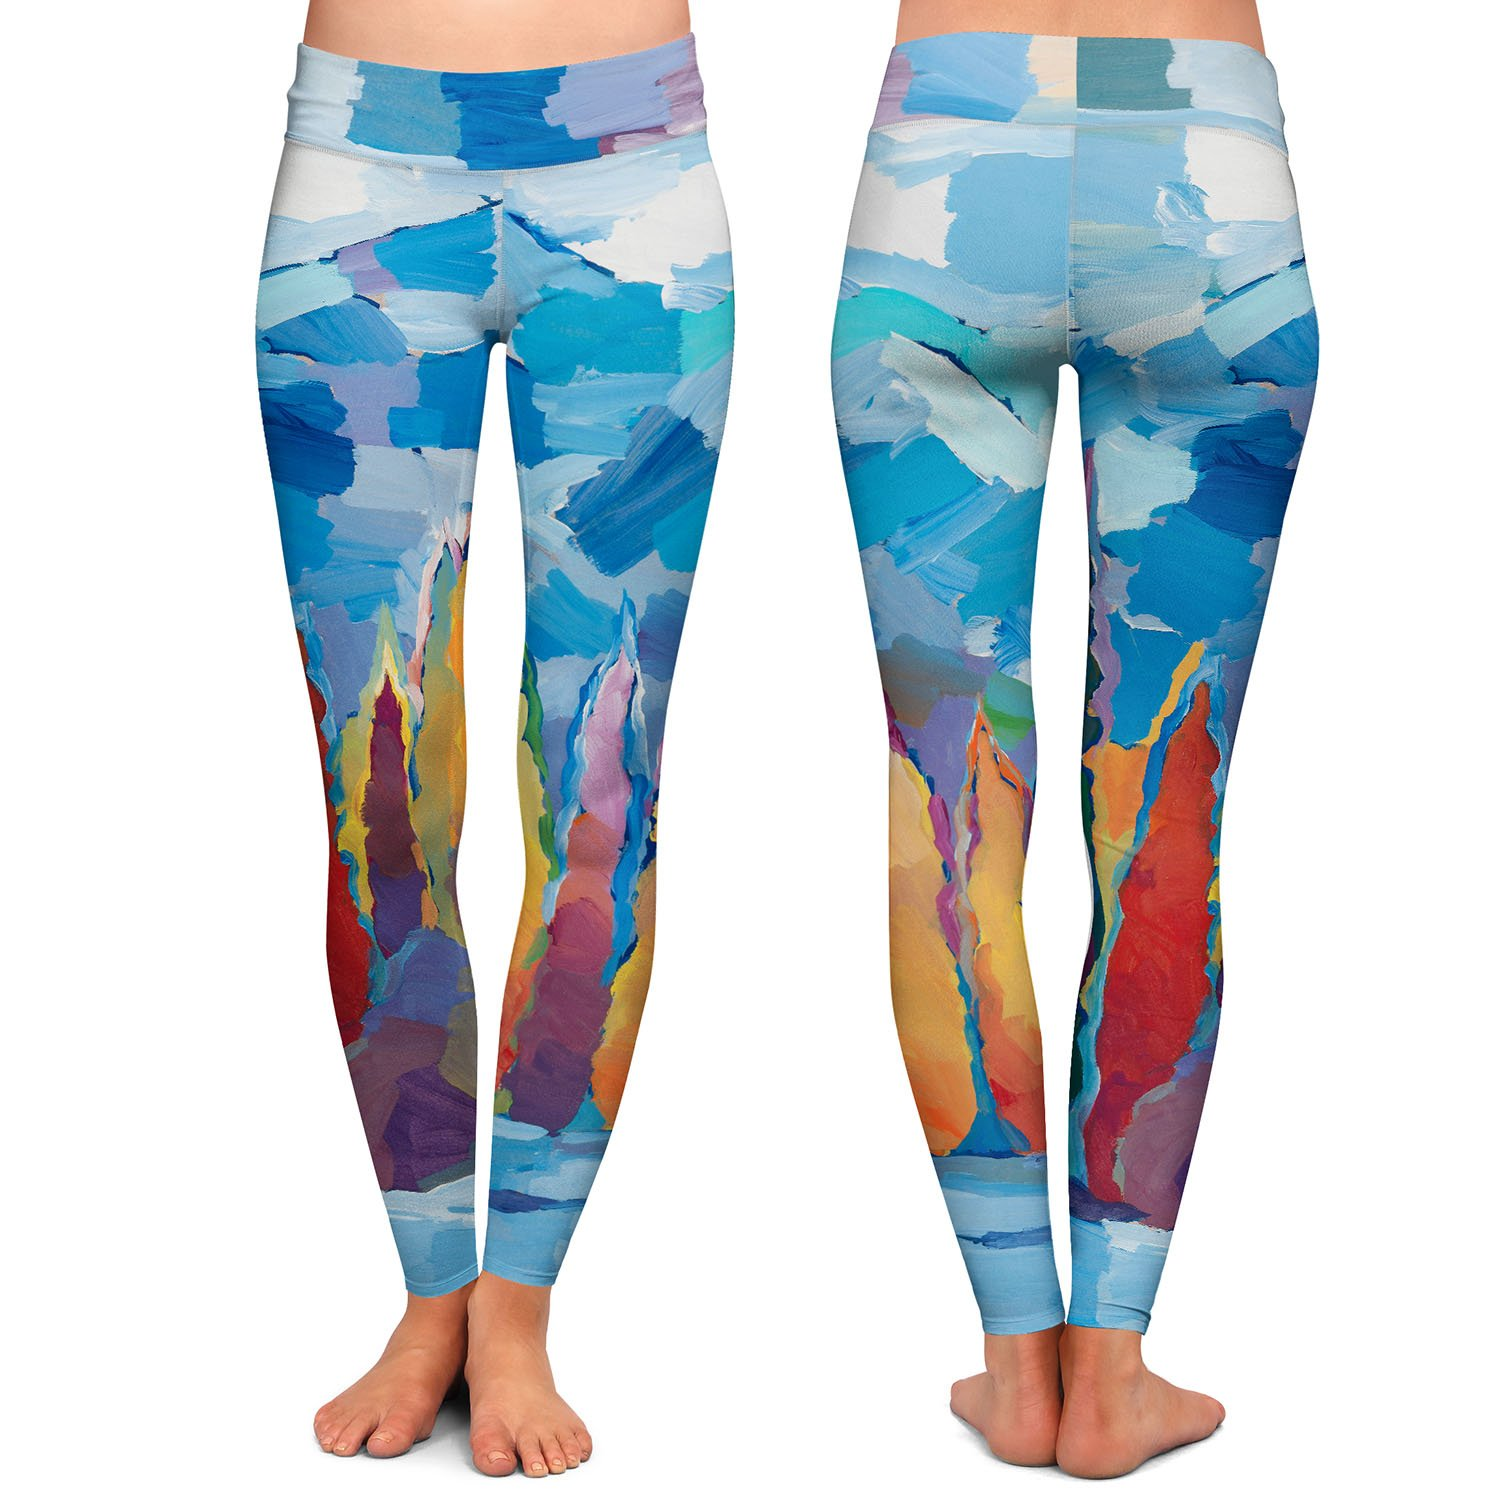 Athletic Yoga Leggings from DiaNoche Designs by Hooshang Khorasani Streamside Gathering